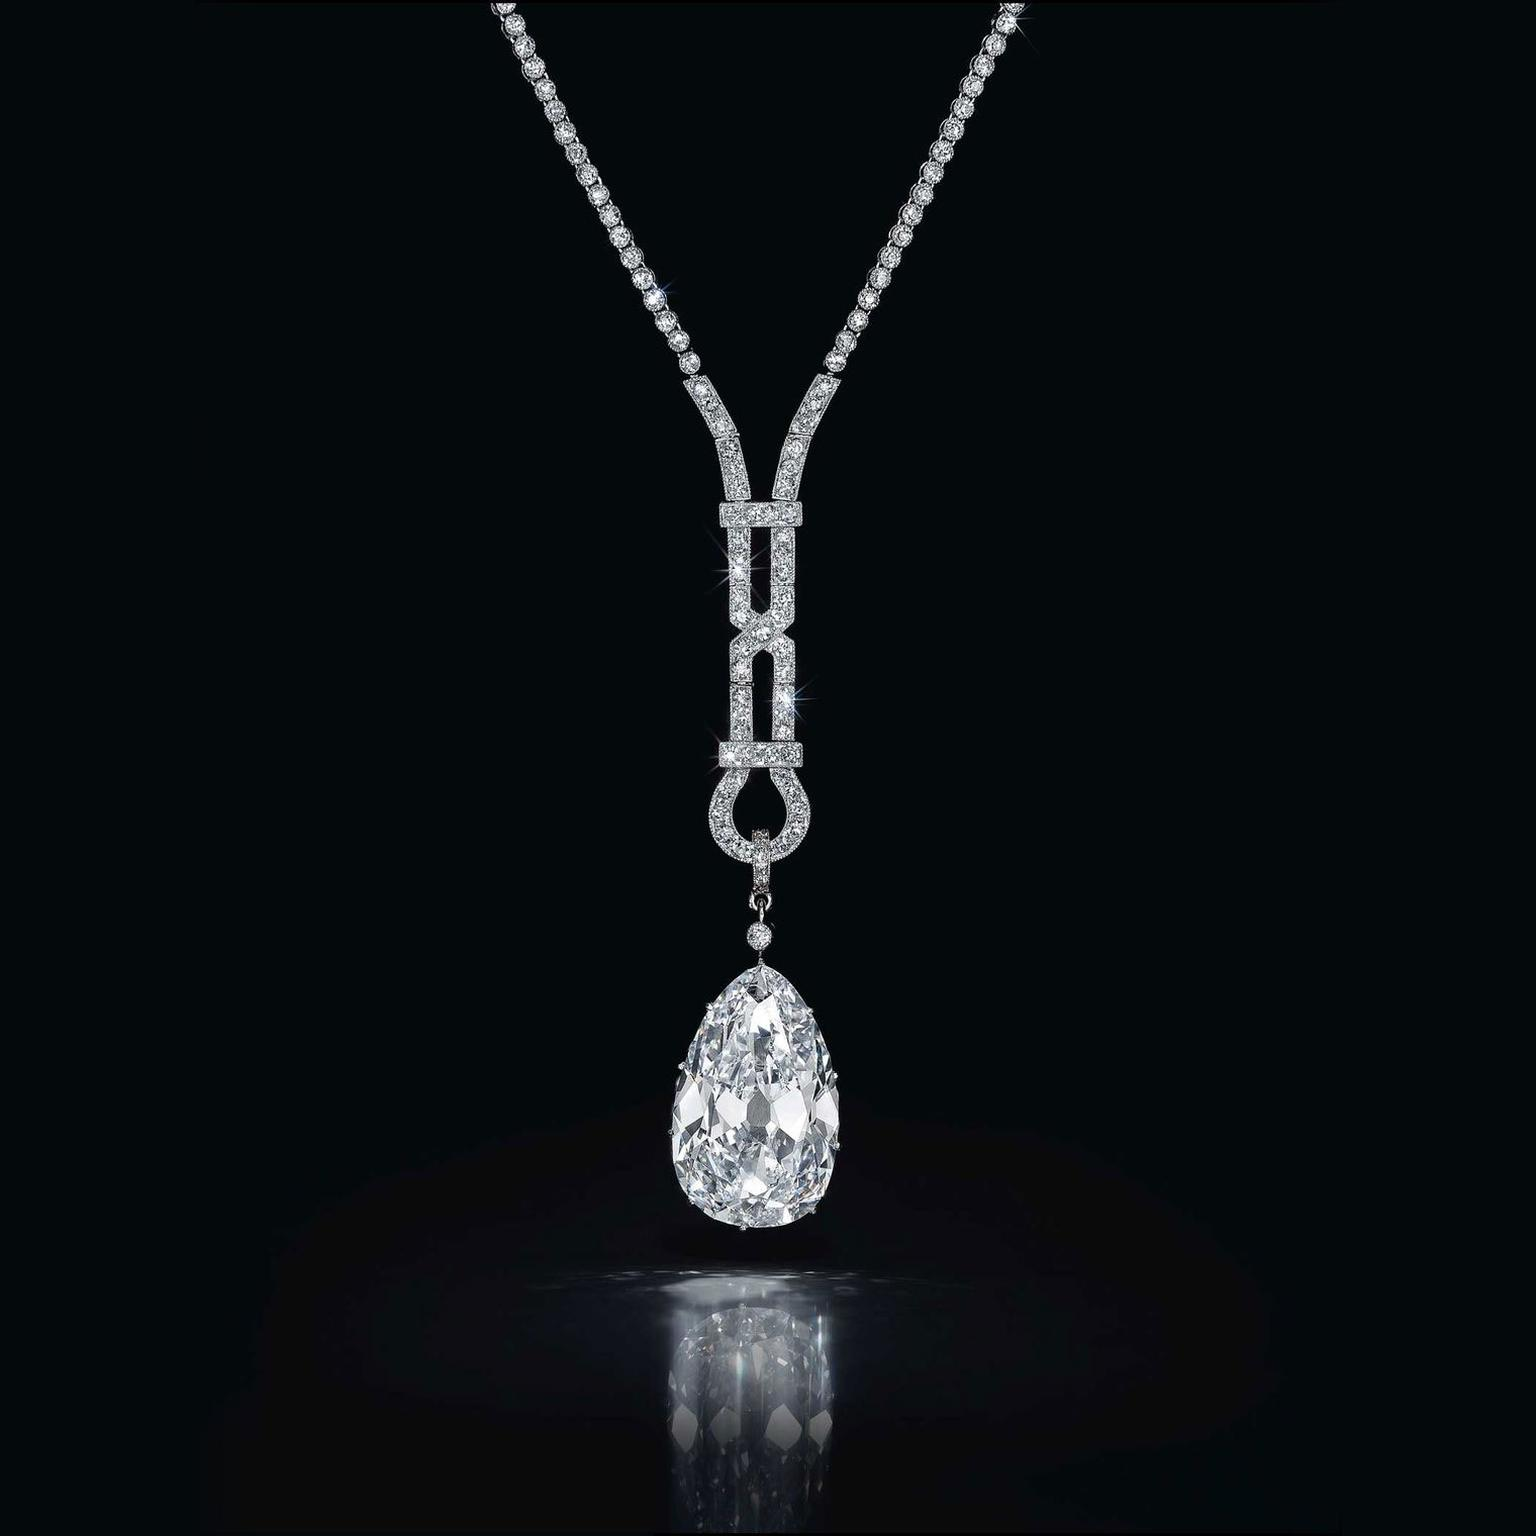 Art Deco pear-shaped diamond pendant necklace